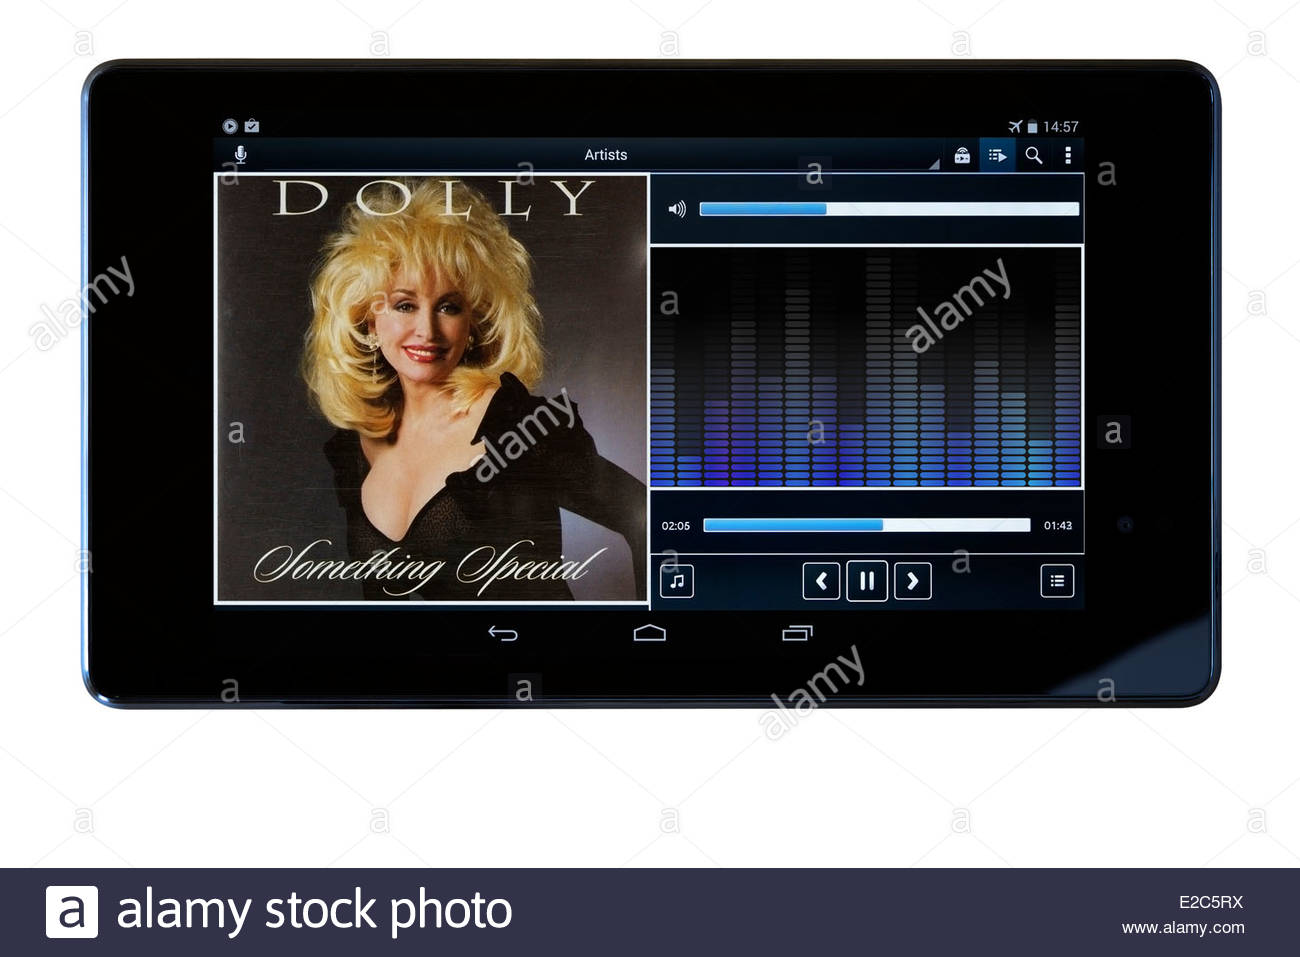 Dolly Parton Something Special, MP3 album art on PC tablet, England - Stock Image